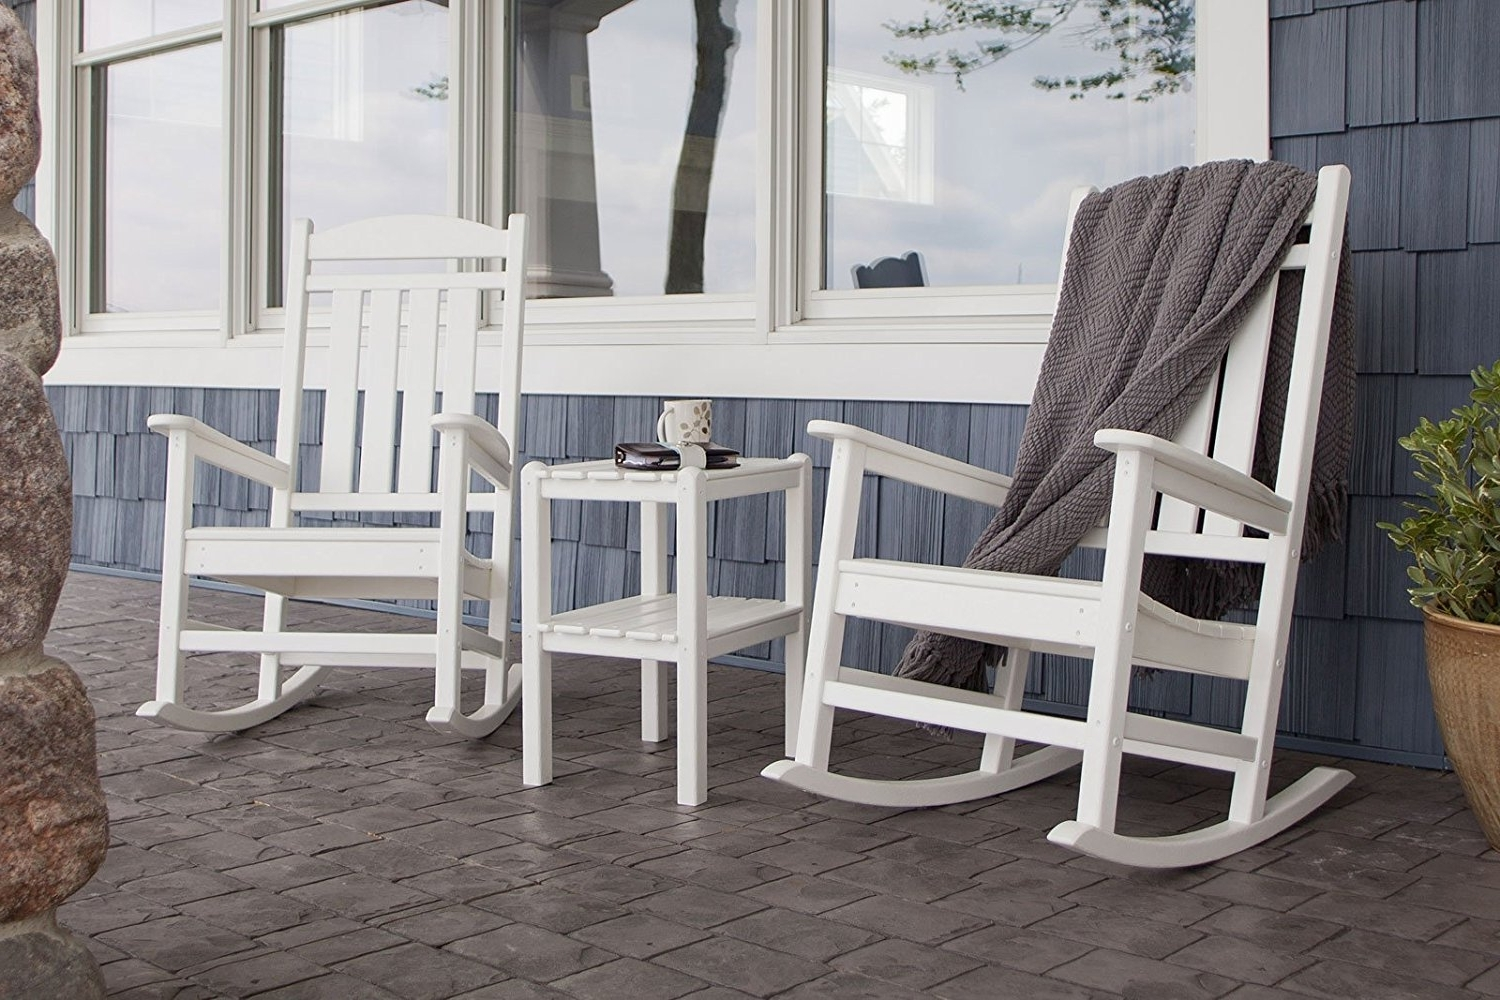 Outdoor Rocking Chairs With Table Pertaining To 2019 Livingroom : Astonishing Com Polywood Pws138 Wh Presidential Piece (View 2 of 20)